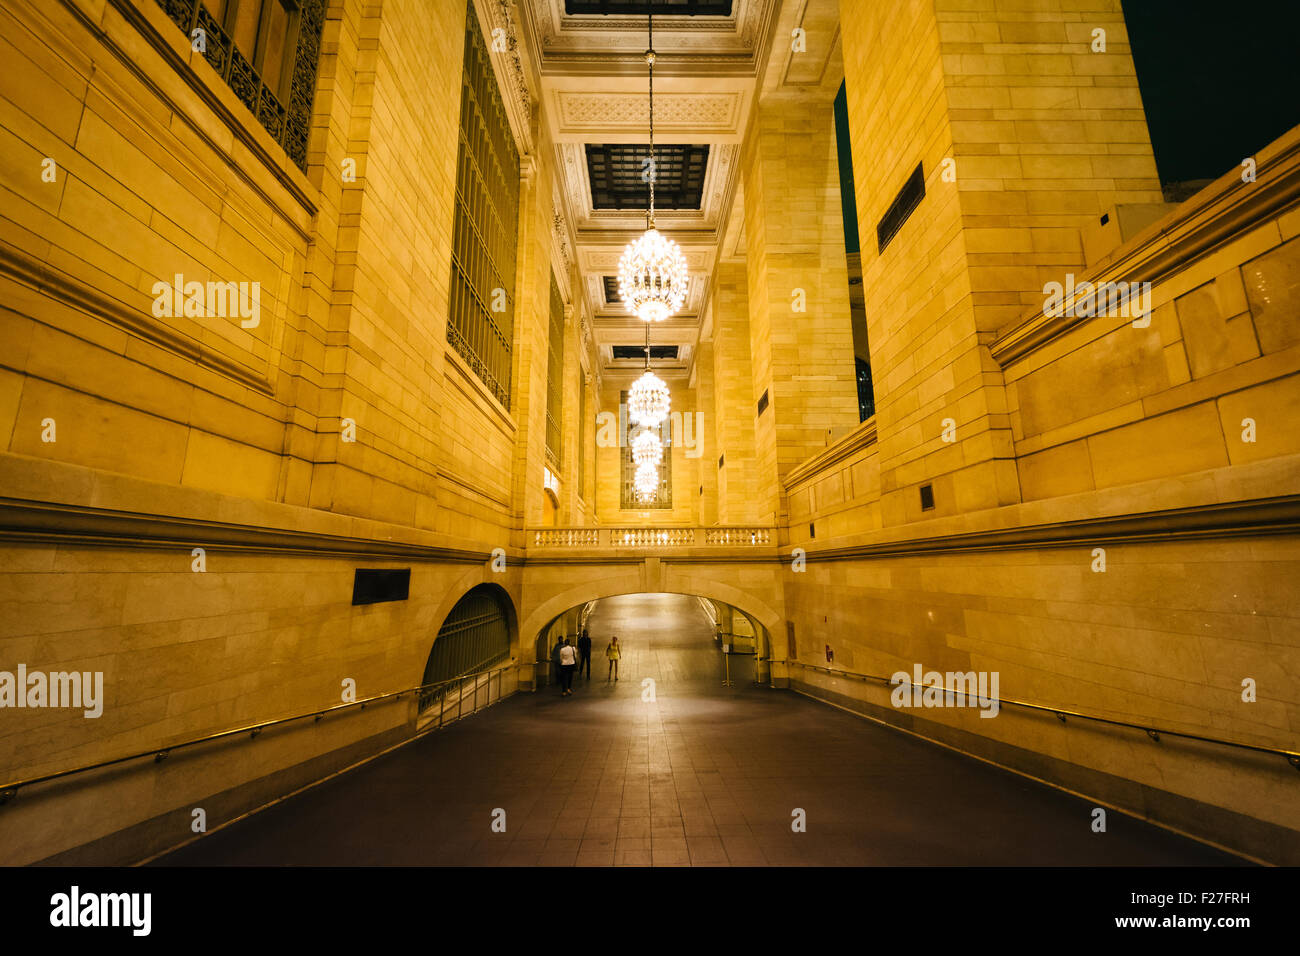 Gehweg am Grand Central Station, in Midtown Manhattan, New York. Stockbild